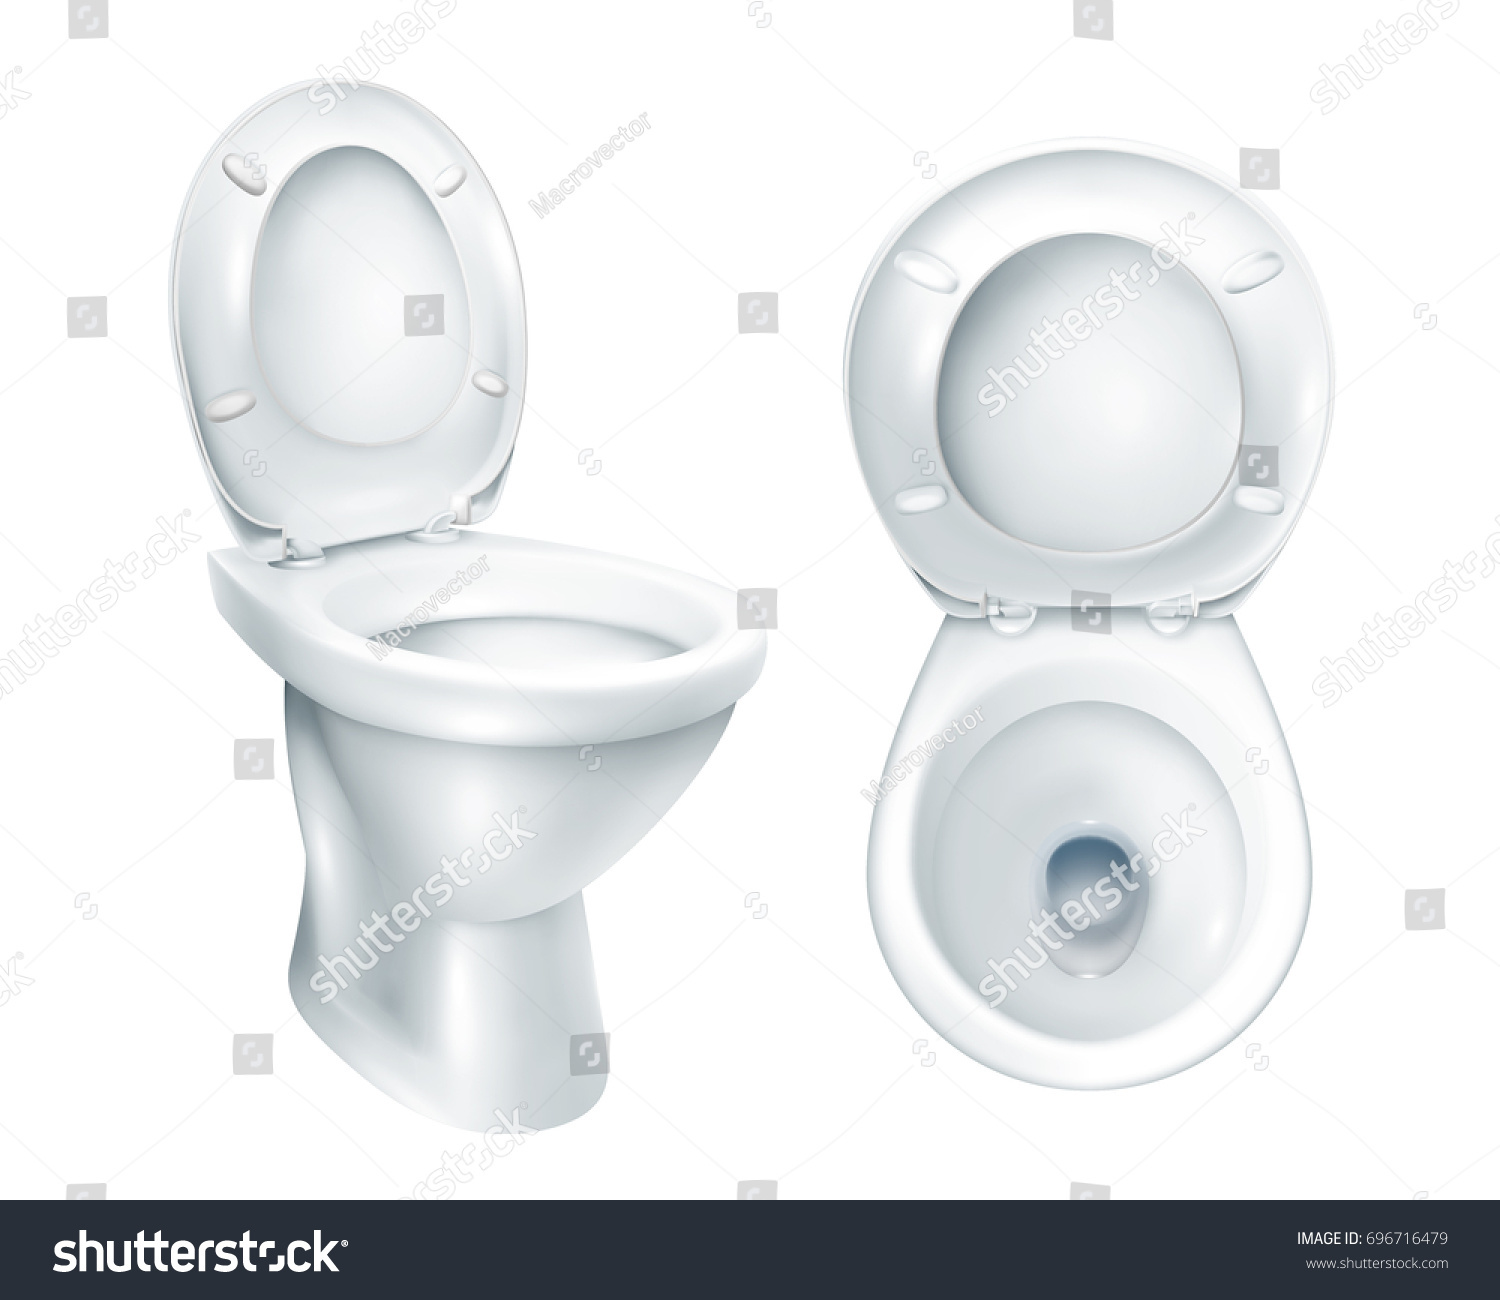 Realistic toilet top view and general mockup with raised plastic seat on  white background isolated vector. Realistic Toilet Top View General Mockup Stock Vector 696716479